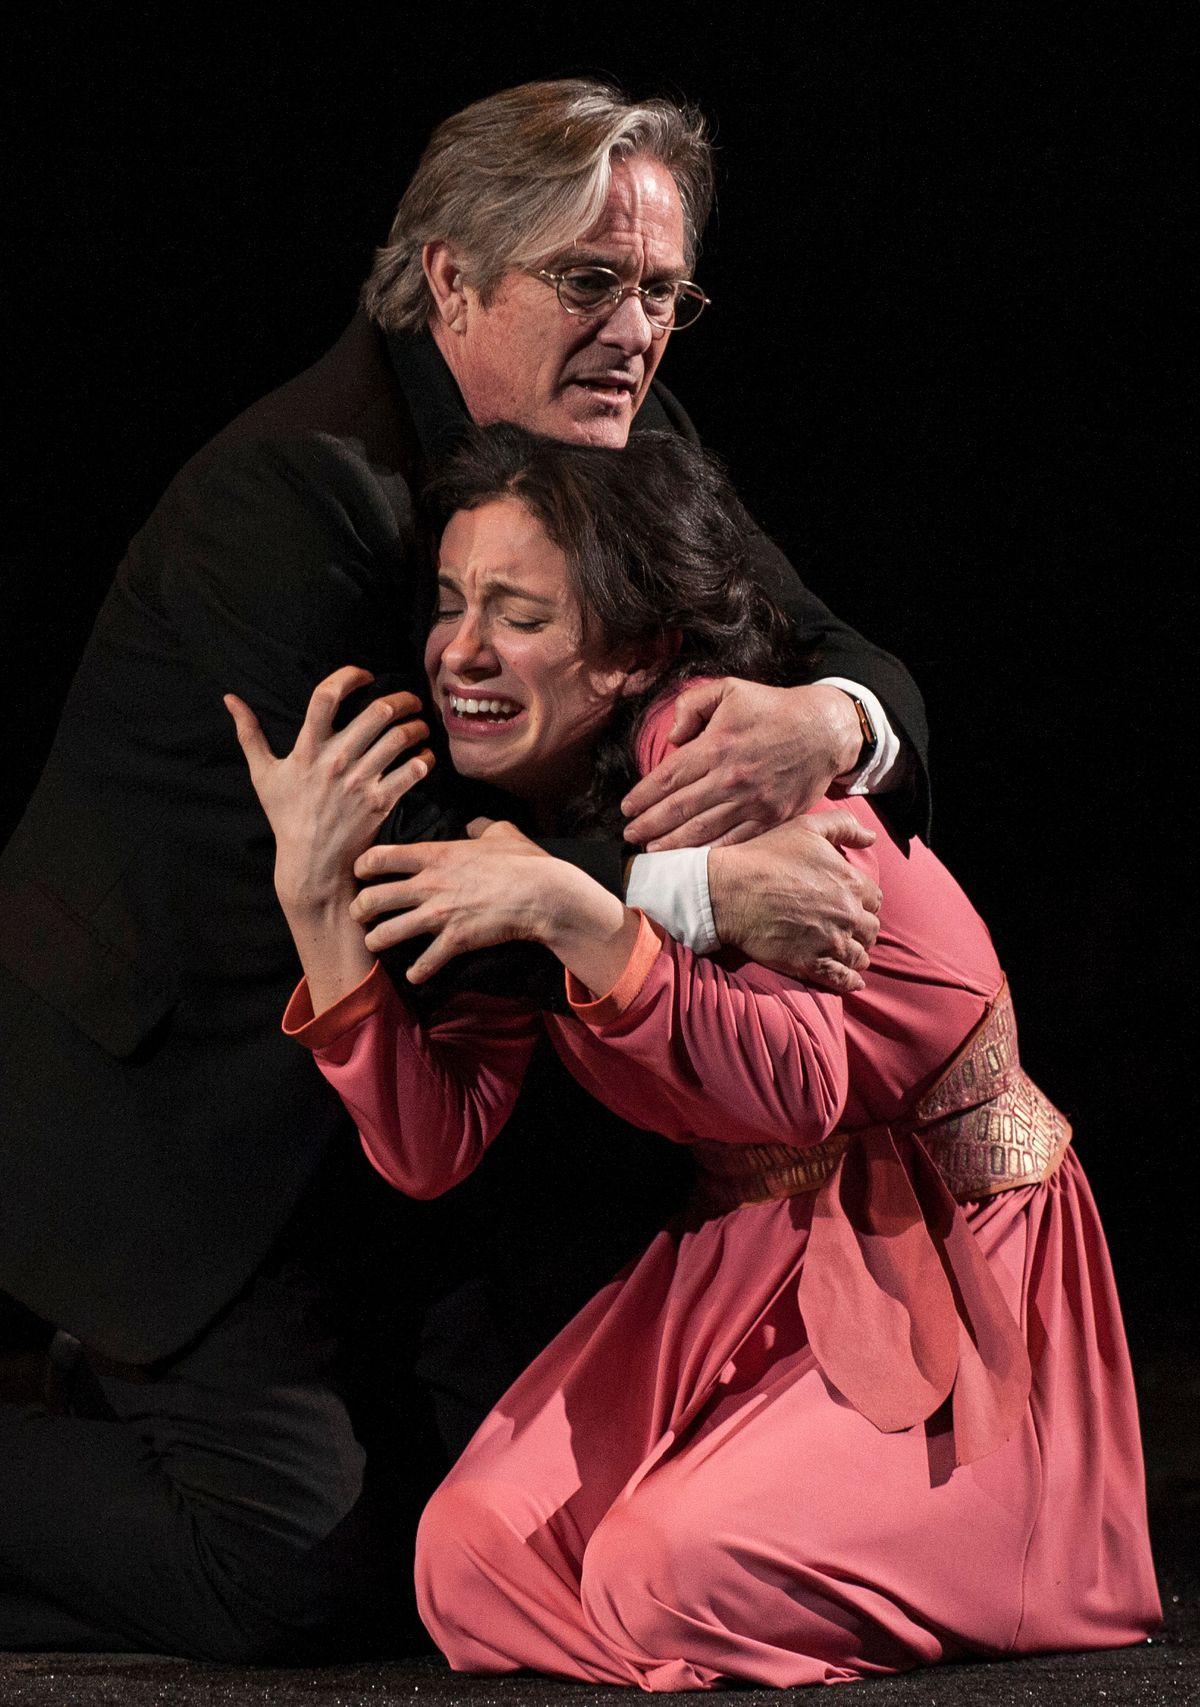 """James Newcomb (as the Duke) and Alejandra Escalante (as (Isabella) in Goodman Theatre's 2013 production of """"Measure for Measure,"""" directed by Robert Falls. 